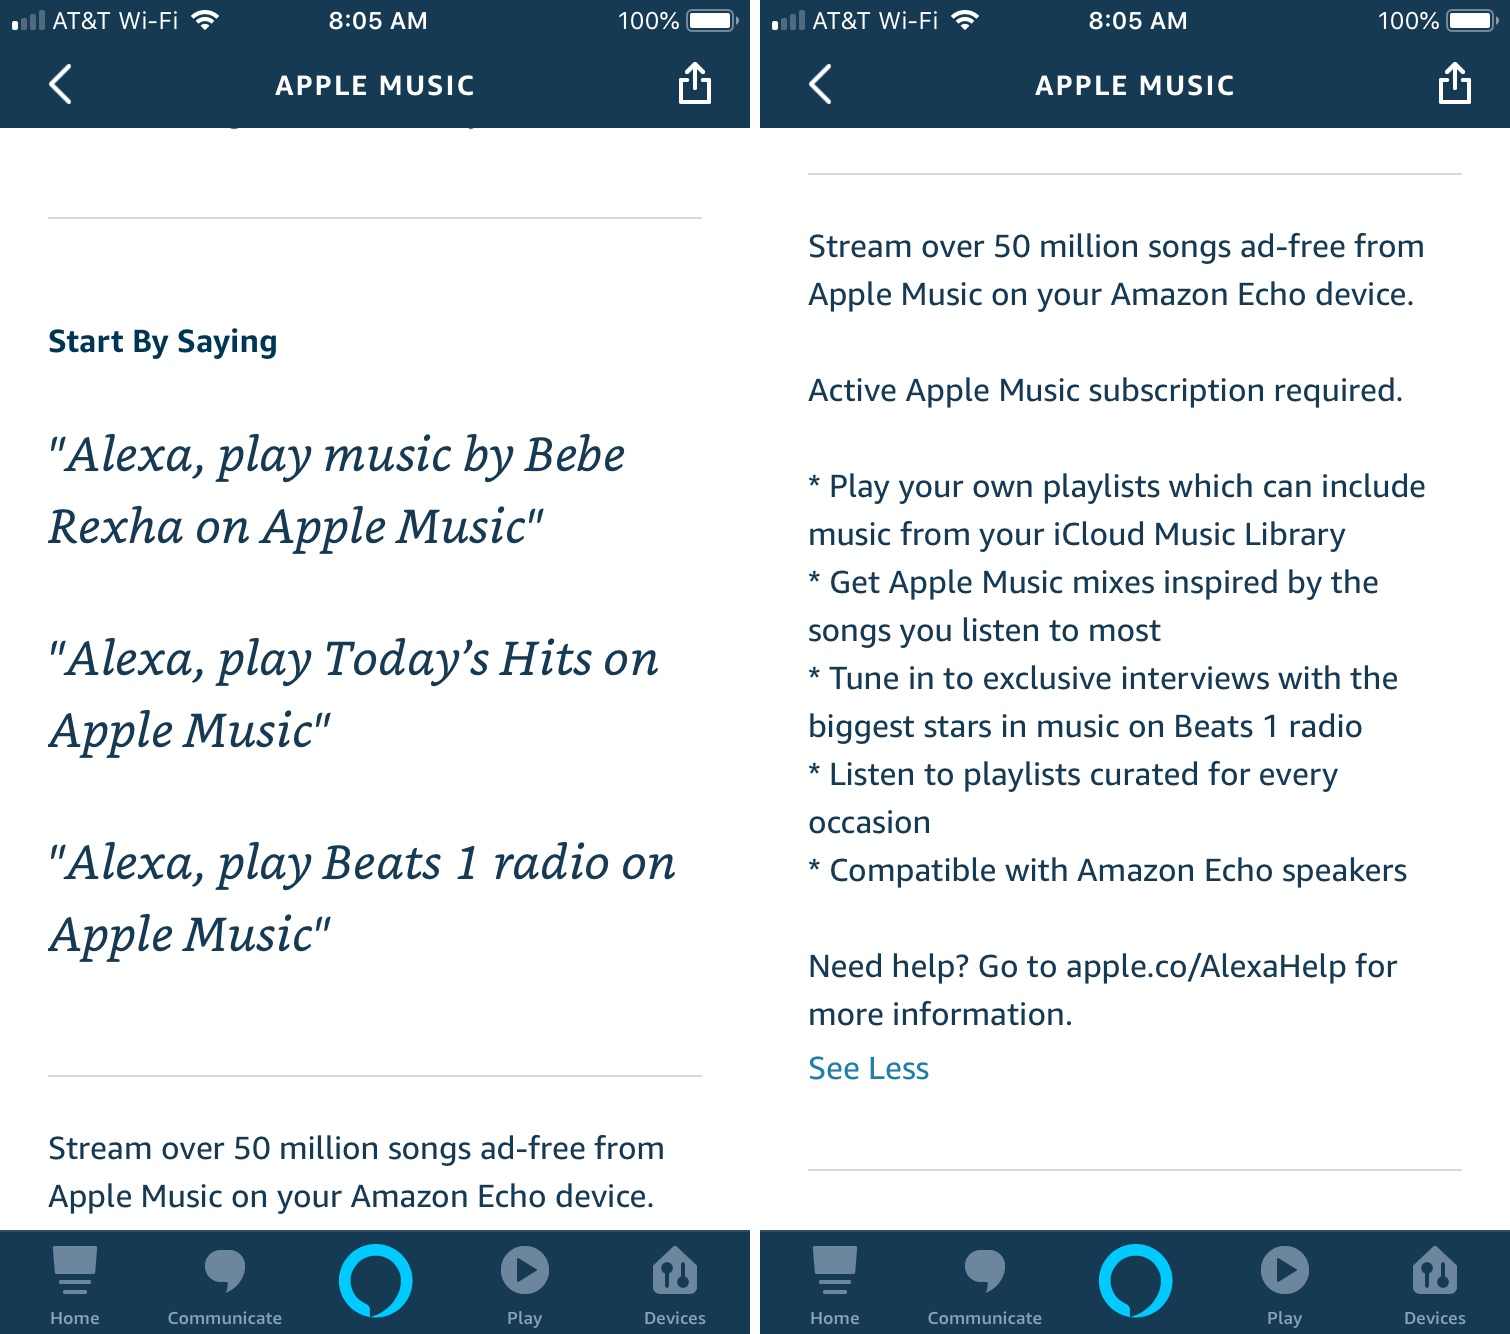 Apple Music Details in Alexa App